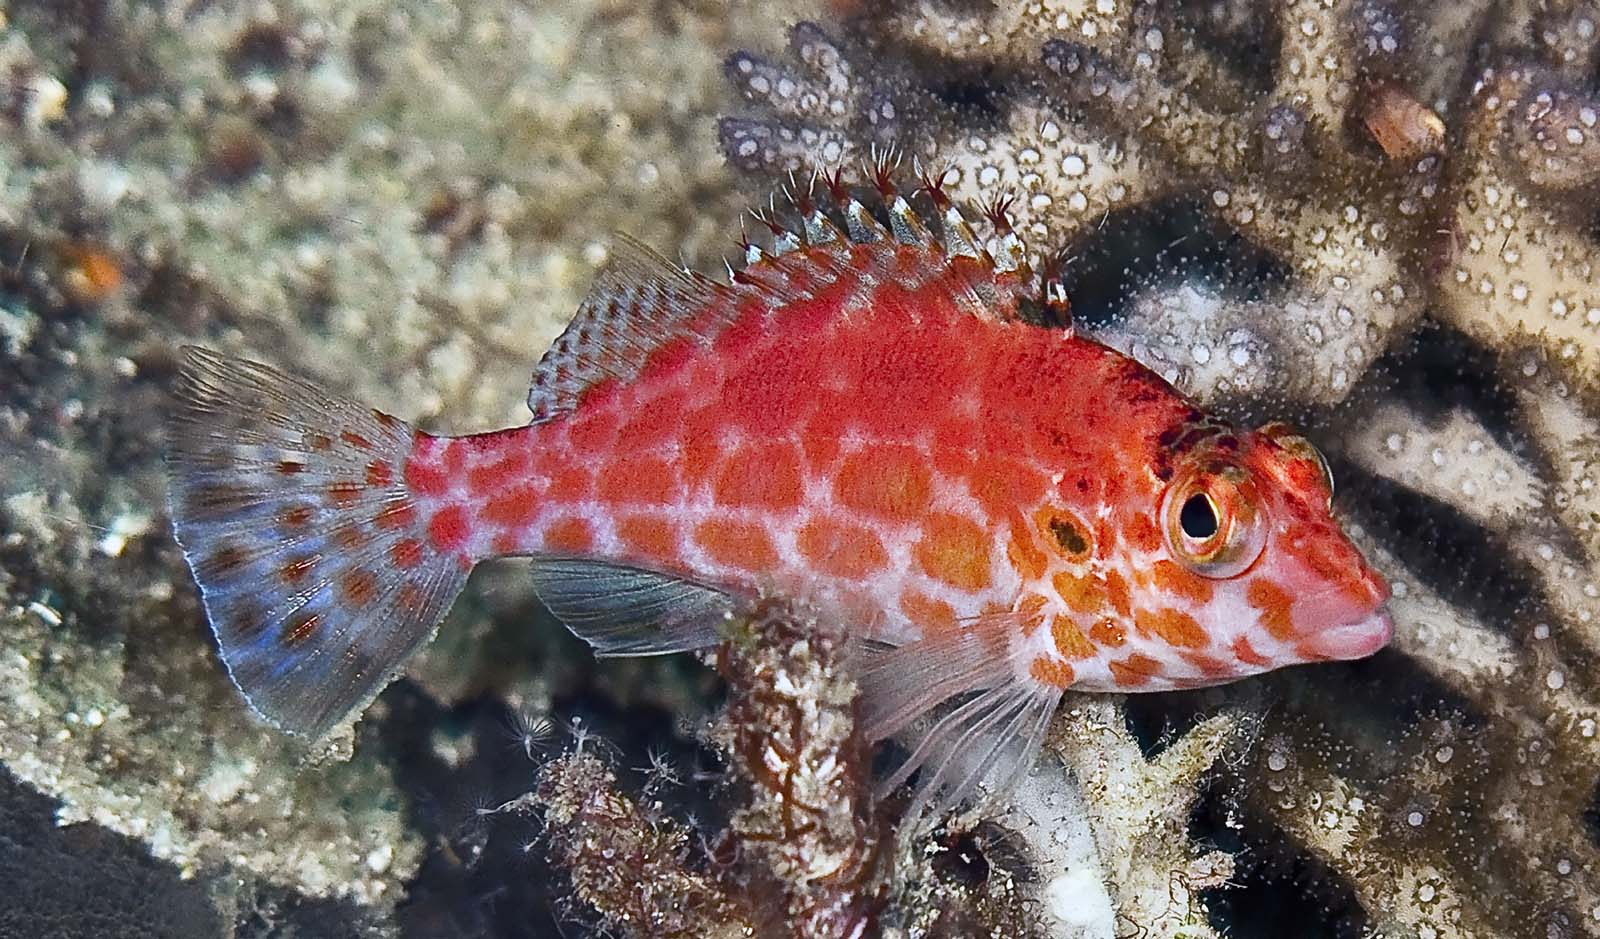 Pixy hawkfish madang ples bilong mi for Red saltwater fish